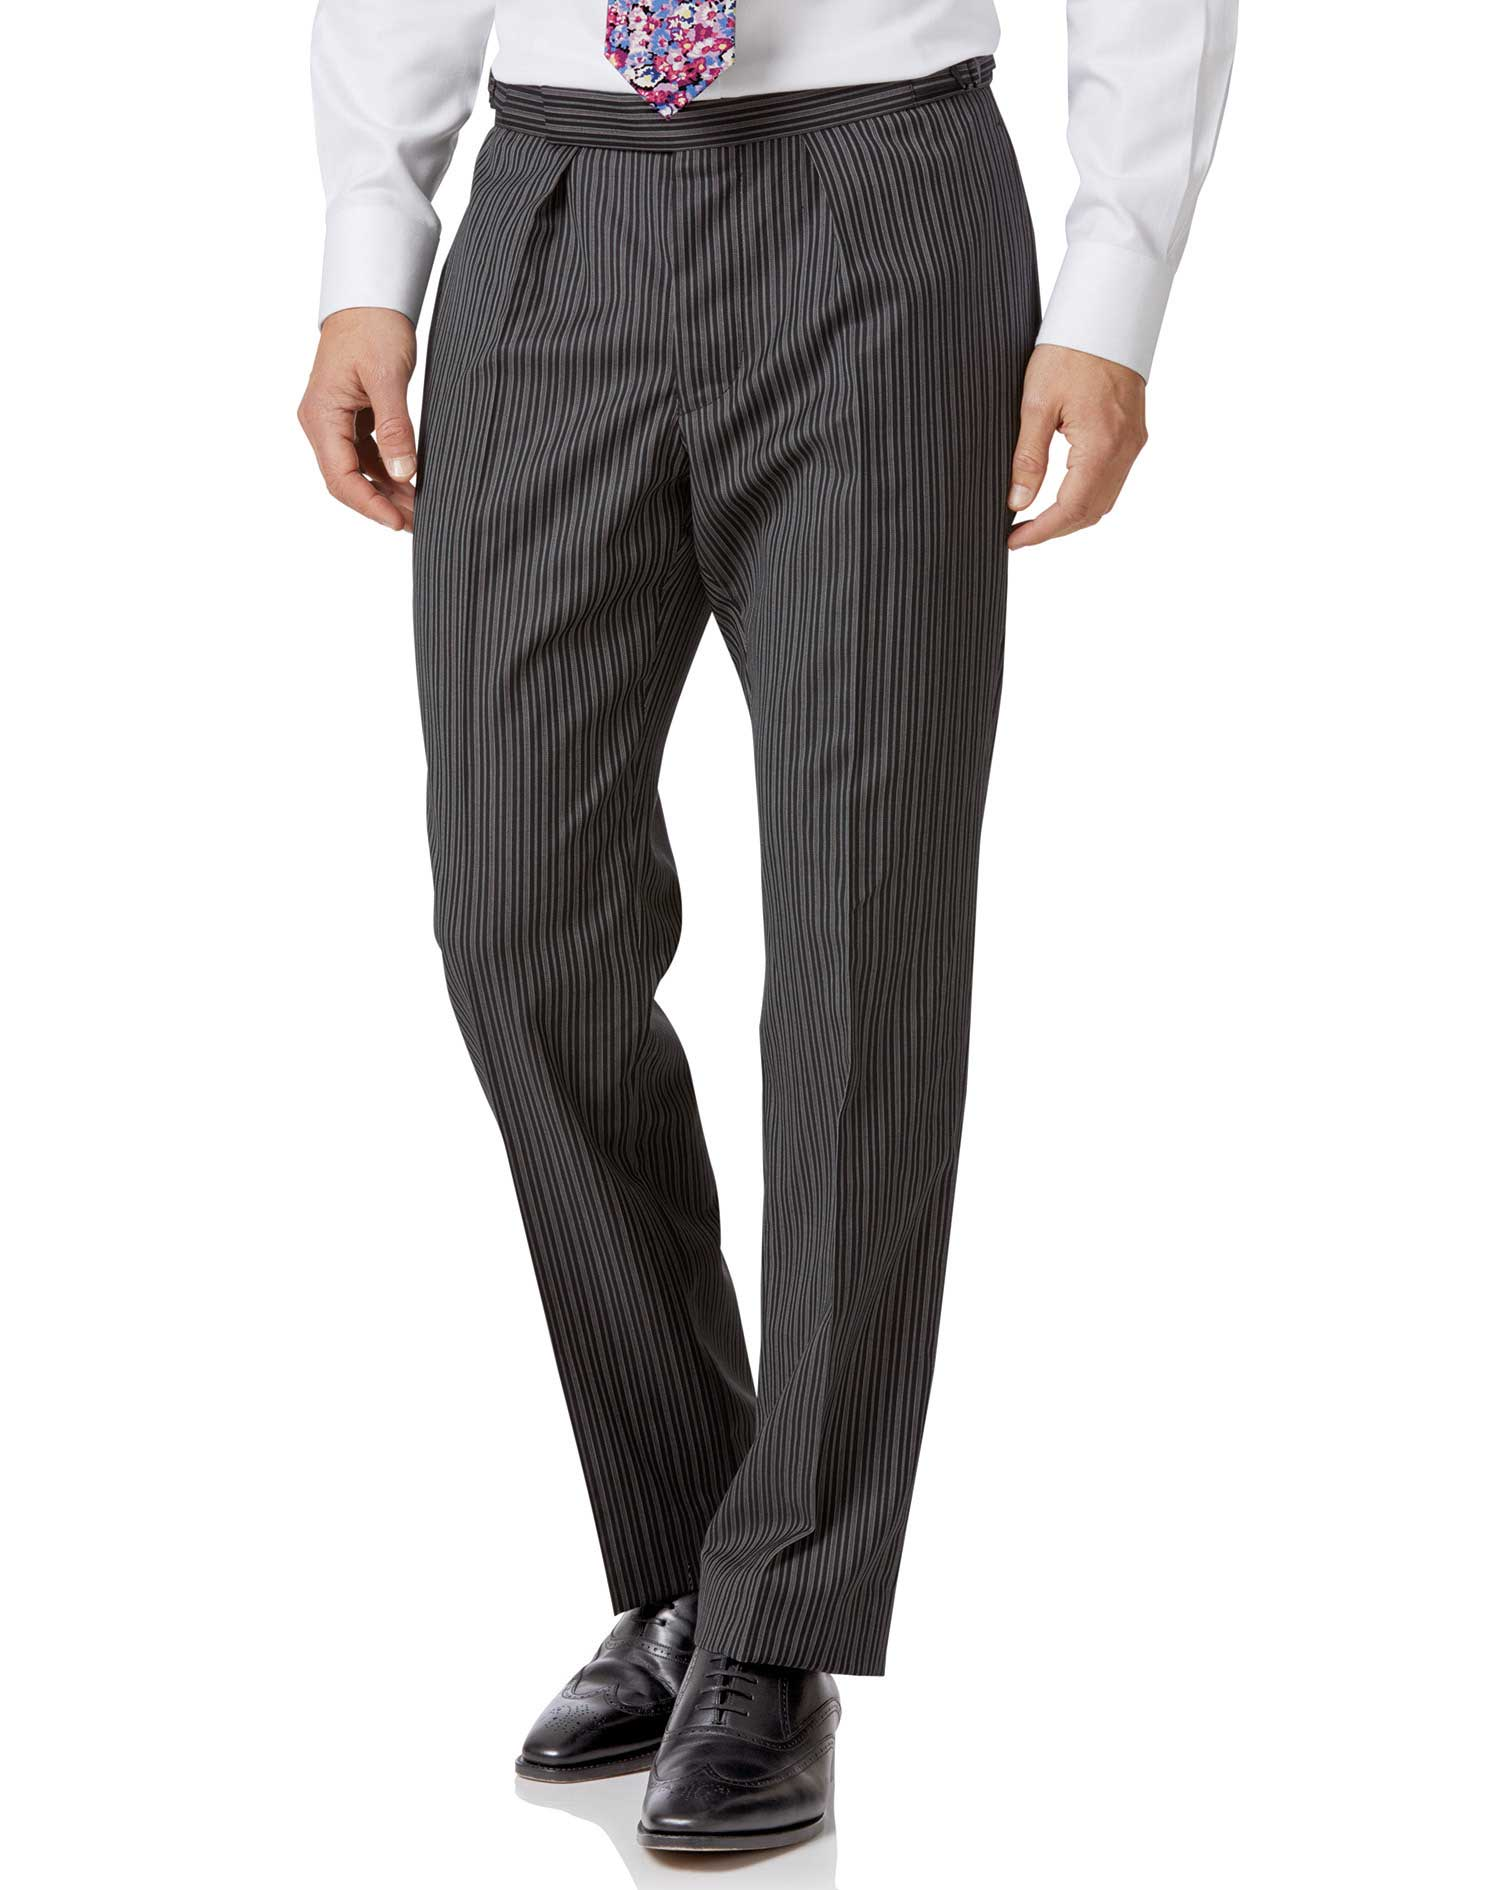 Black Stripe Classic Fit Morning Suit Trousers Size 36/32 by Charles Tyrwhitt